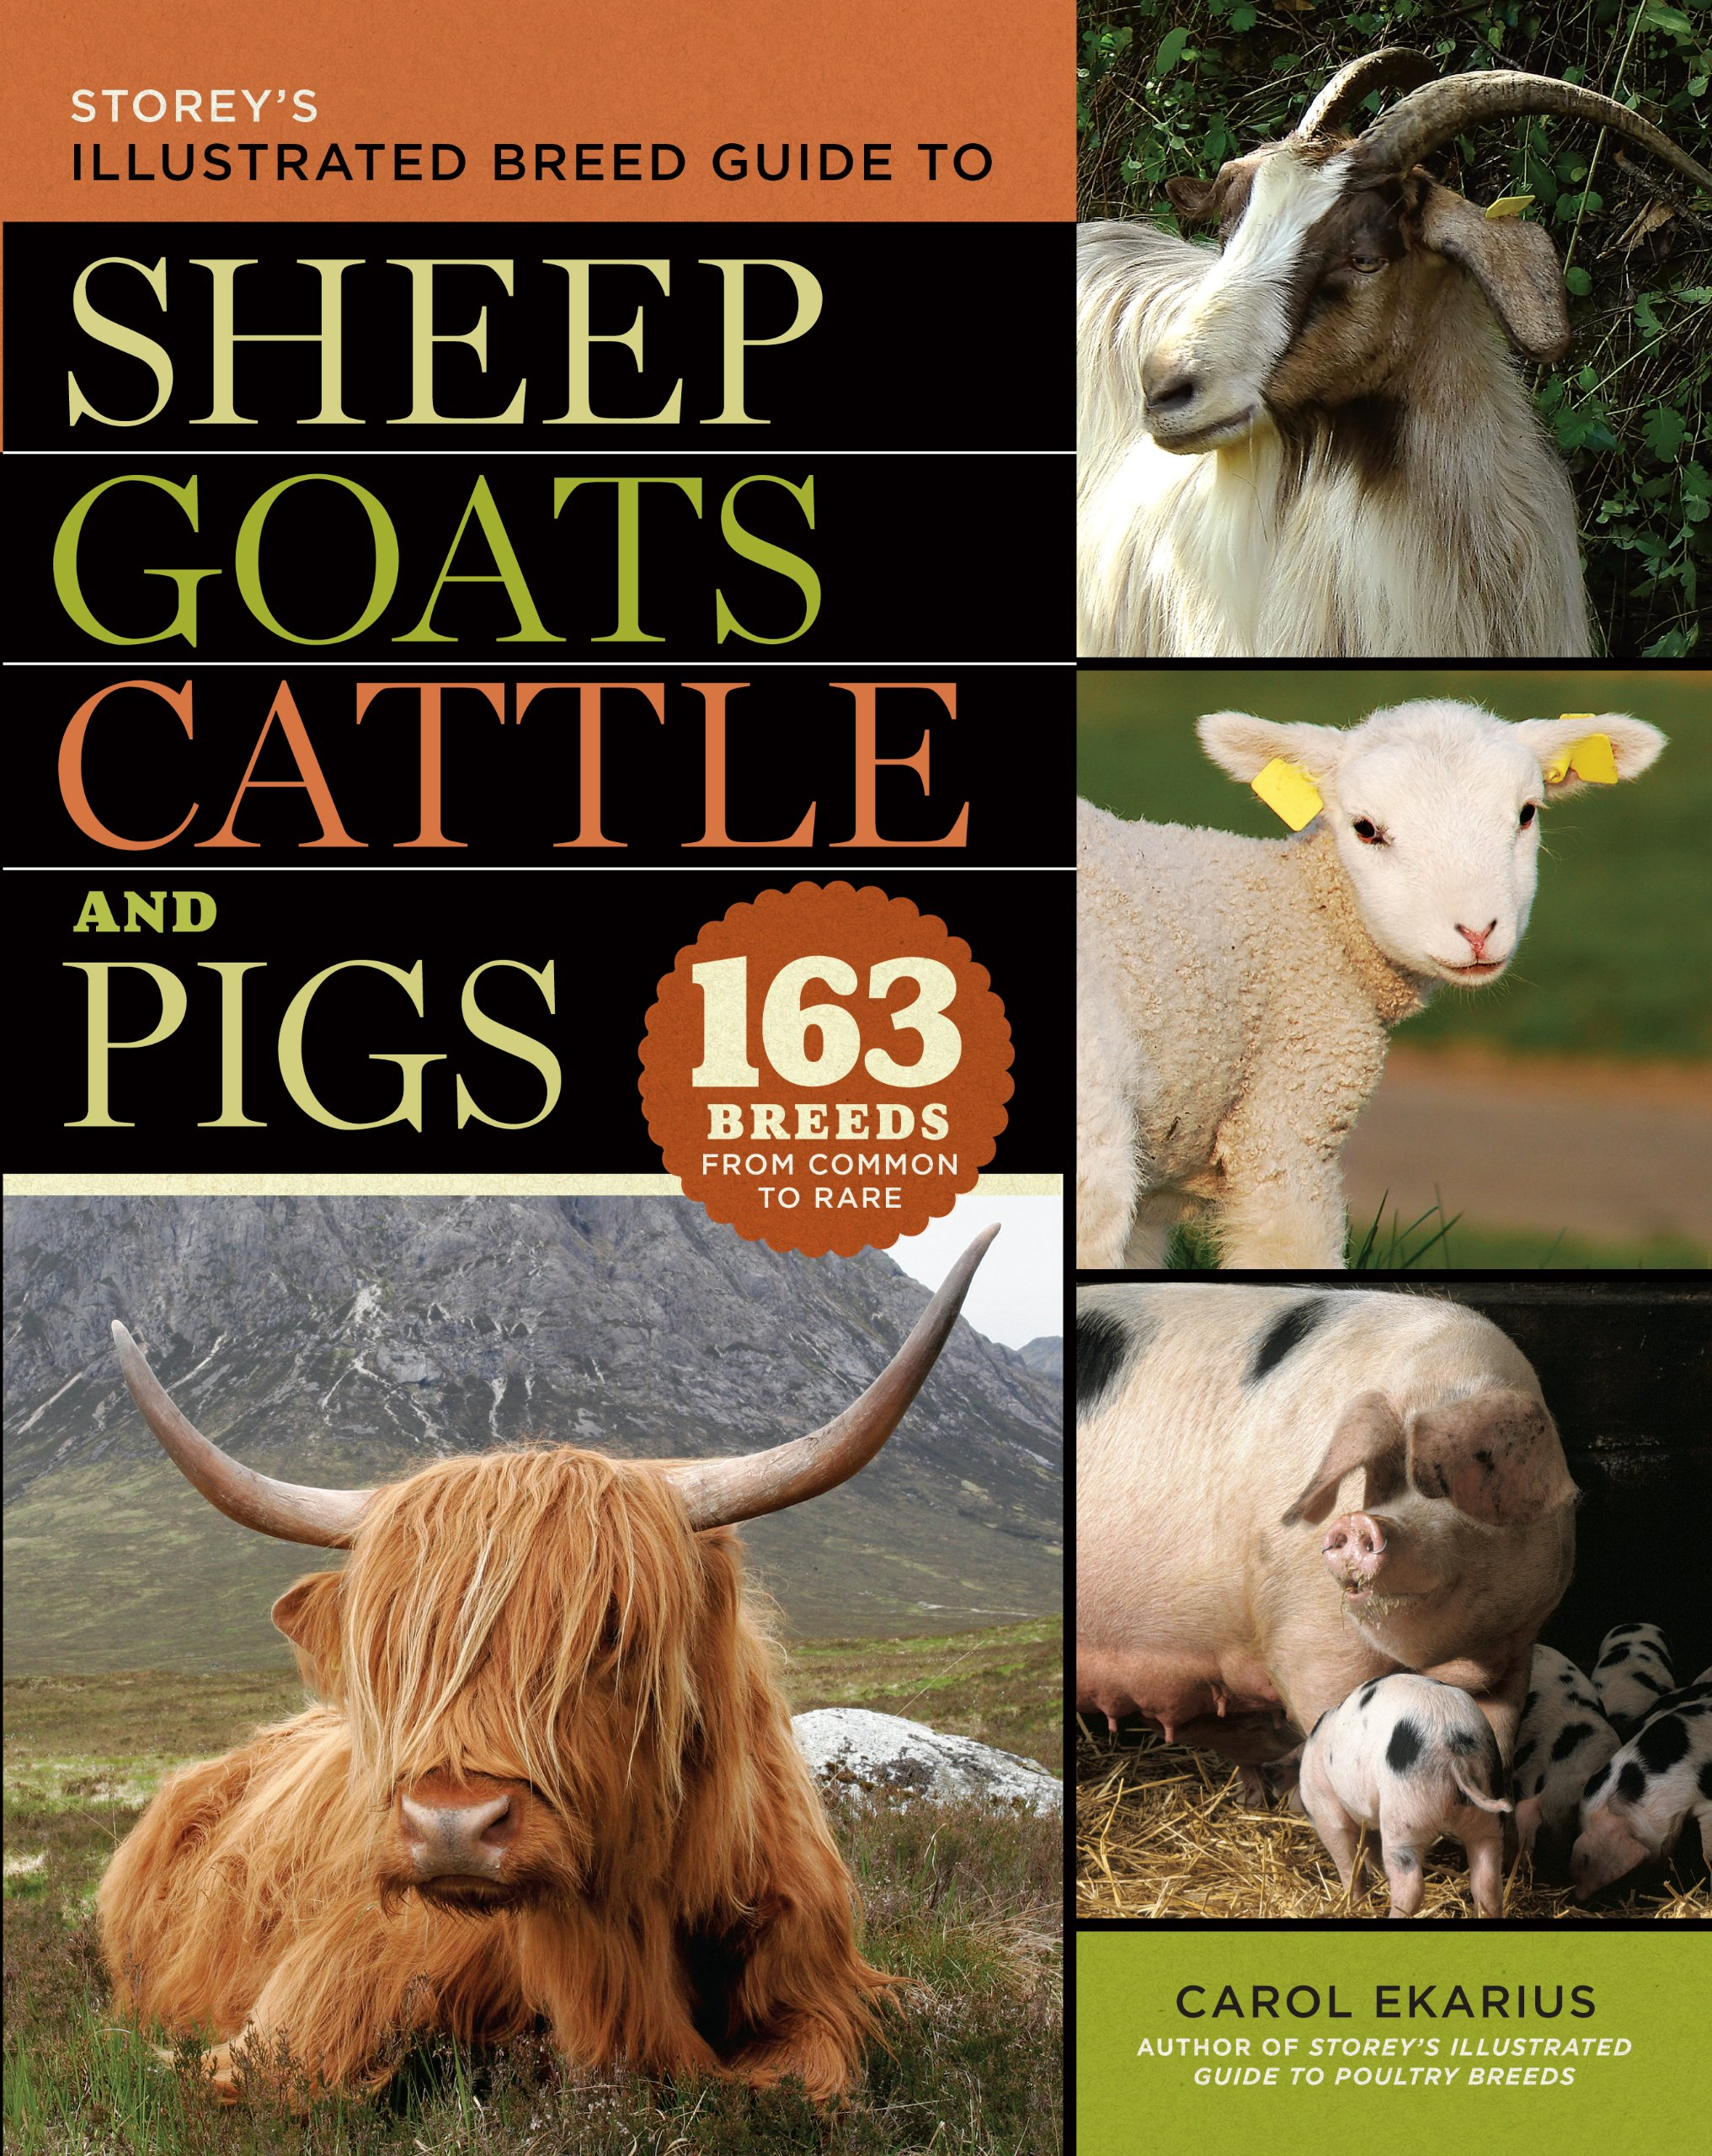 Amazon.com: Storey\'s Illustrated Breed Guide to Sheep, Goats, Cattle ...